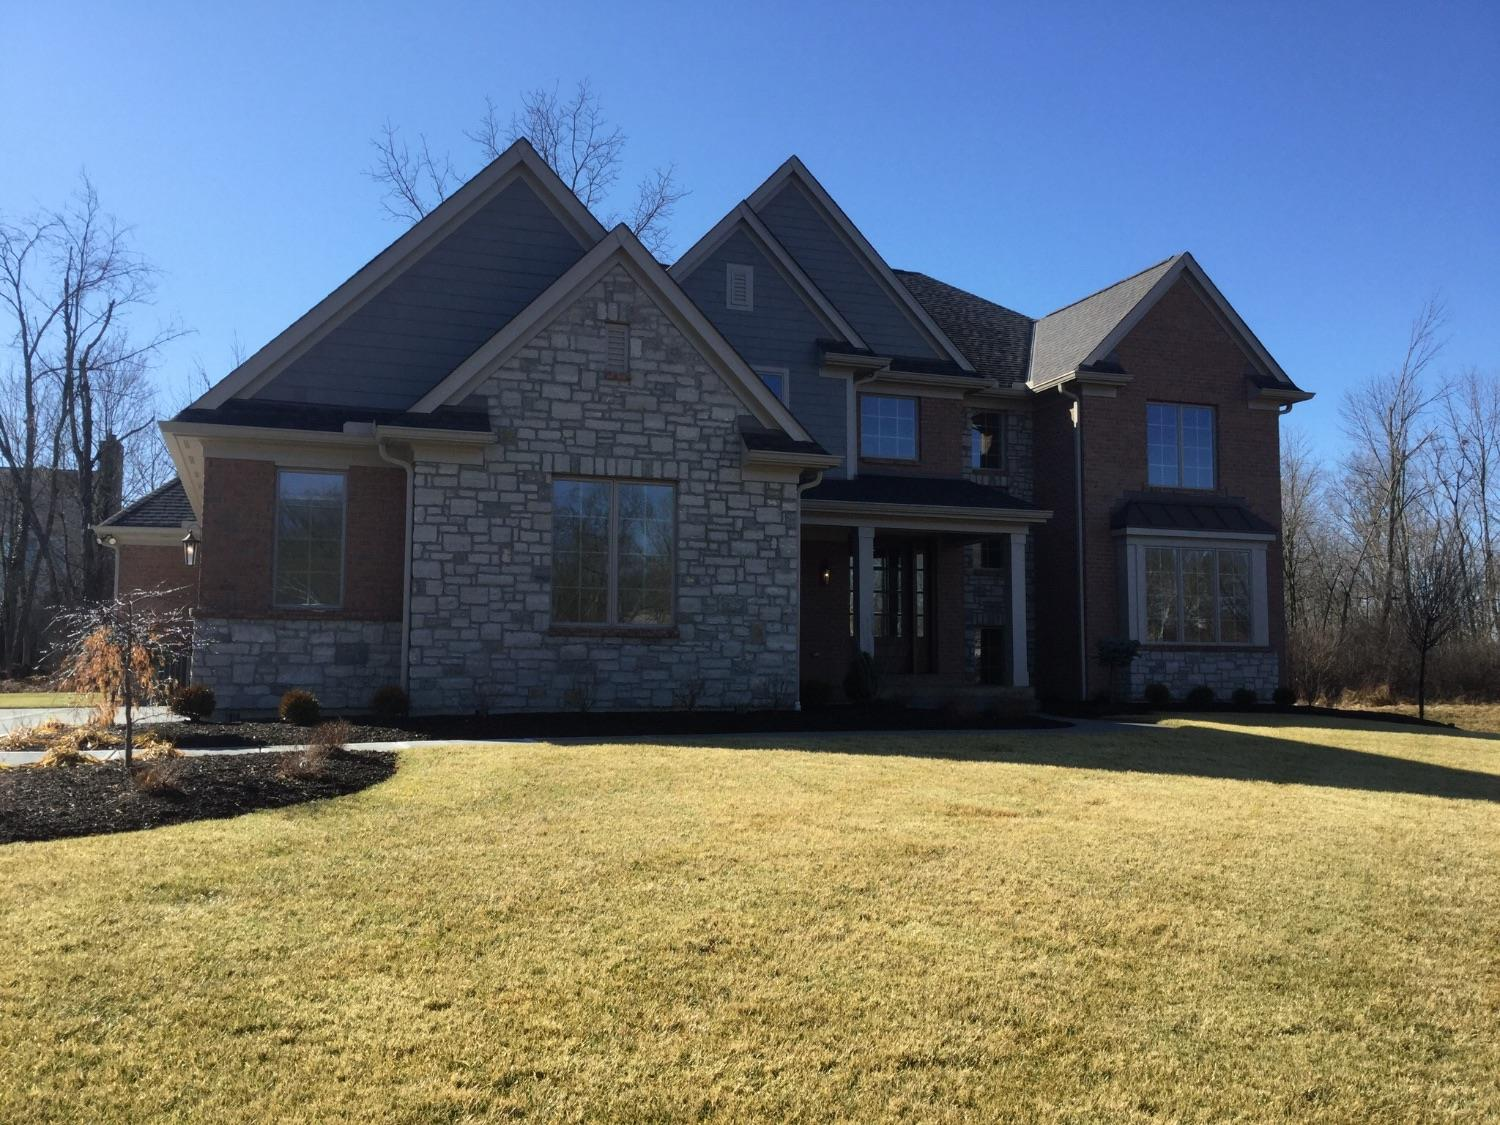 5167 Sycamore View Dr, Lot 4 Mason, OH